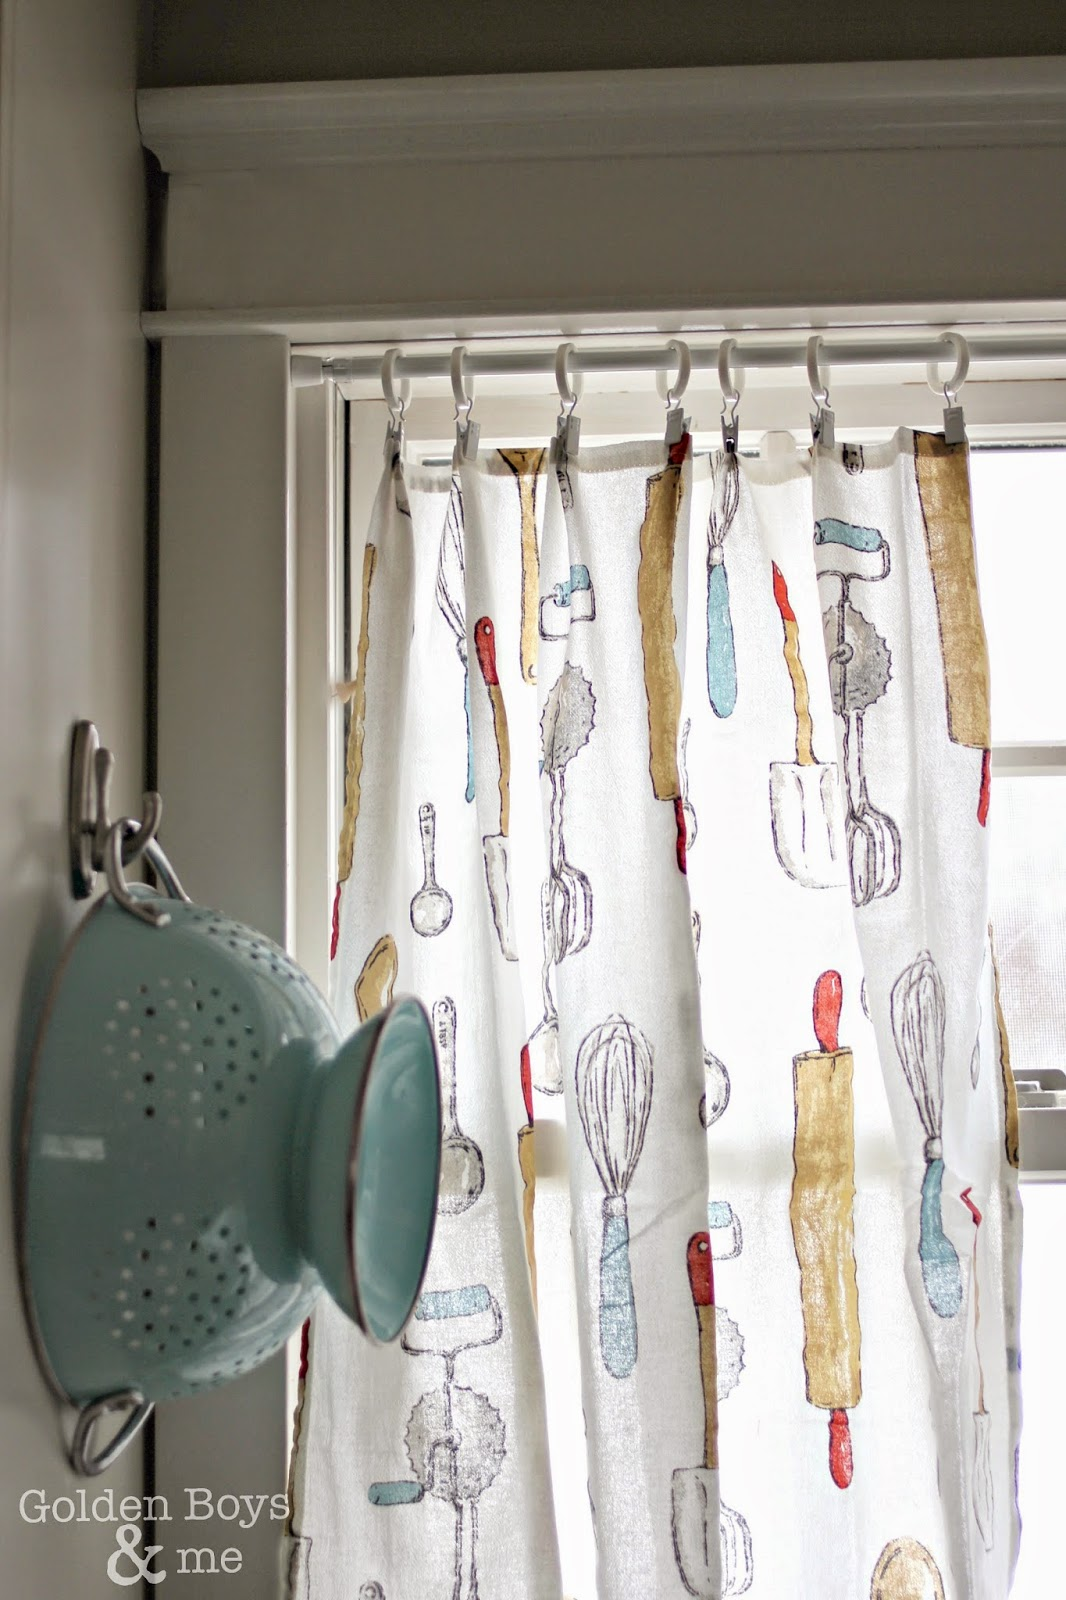 kitchen dish towels craftsman cabinets golden boys and me turned curtains easy diy made with www goldenboysandme com